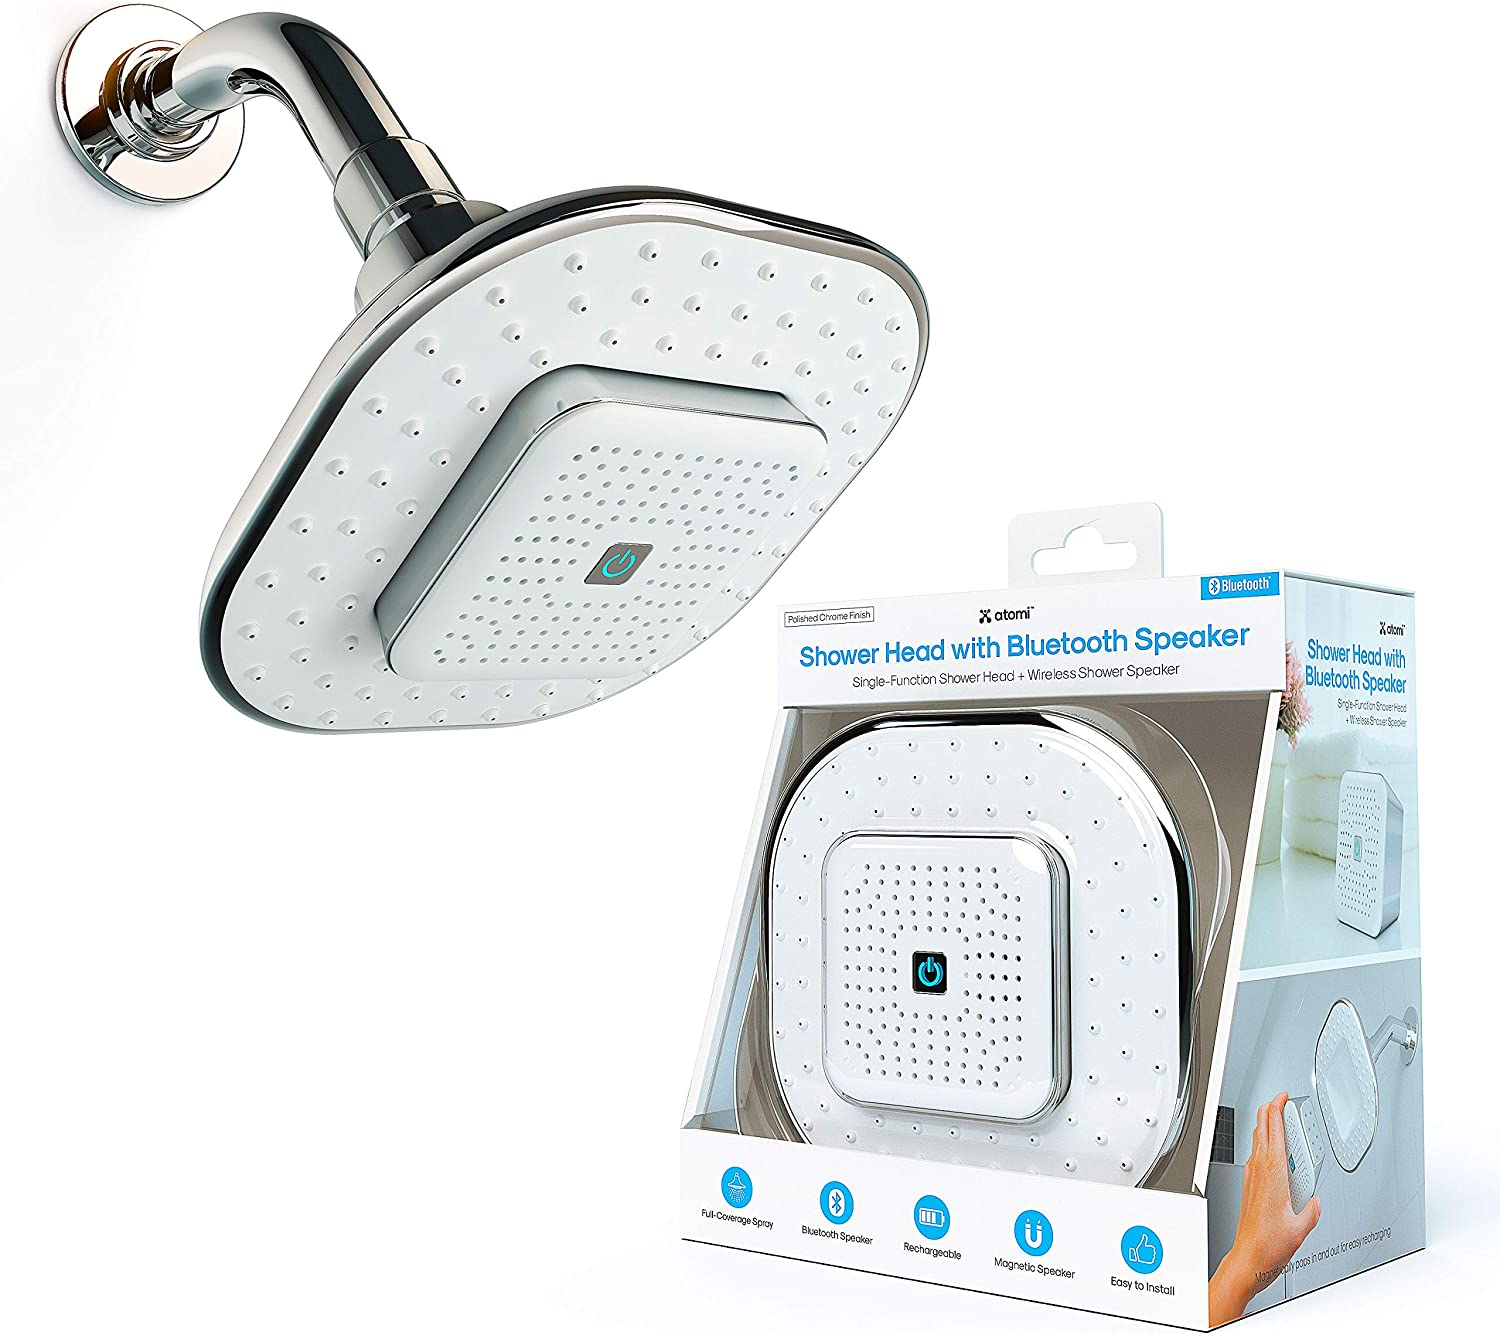 Atomi Shower Head with Bluetooth Speaker - Wireless, Detachable, Portable - with Microphone to Answer Phone Calls - Full-Coverage Spray Nozzle Showerhead for Bathroom - Rechargeable Battery